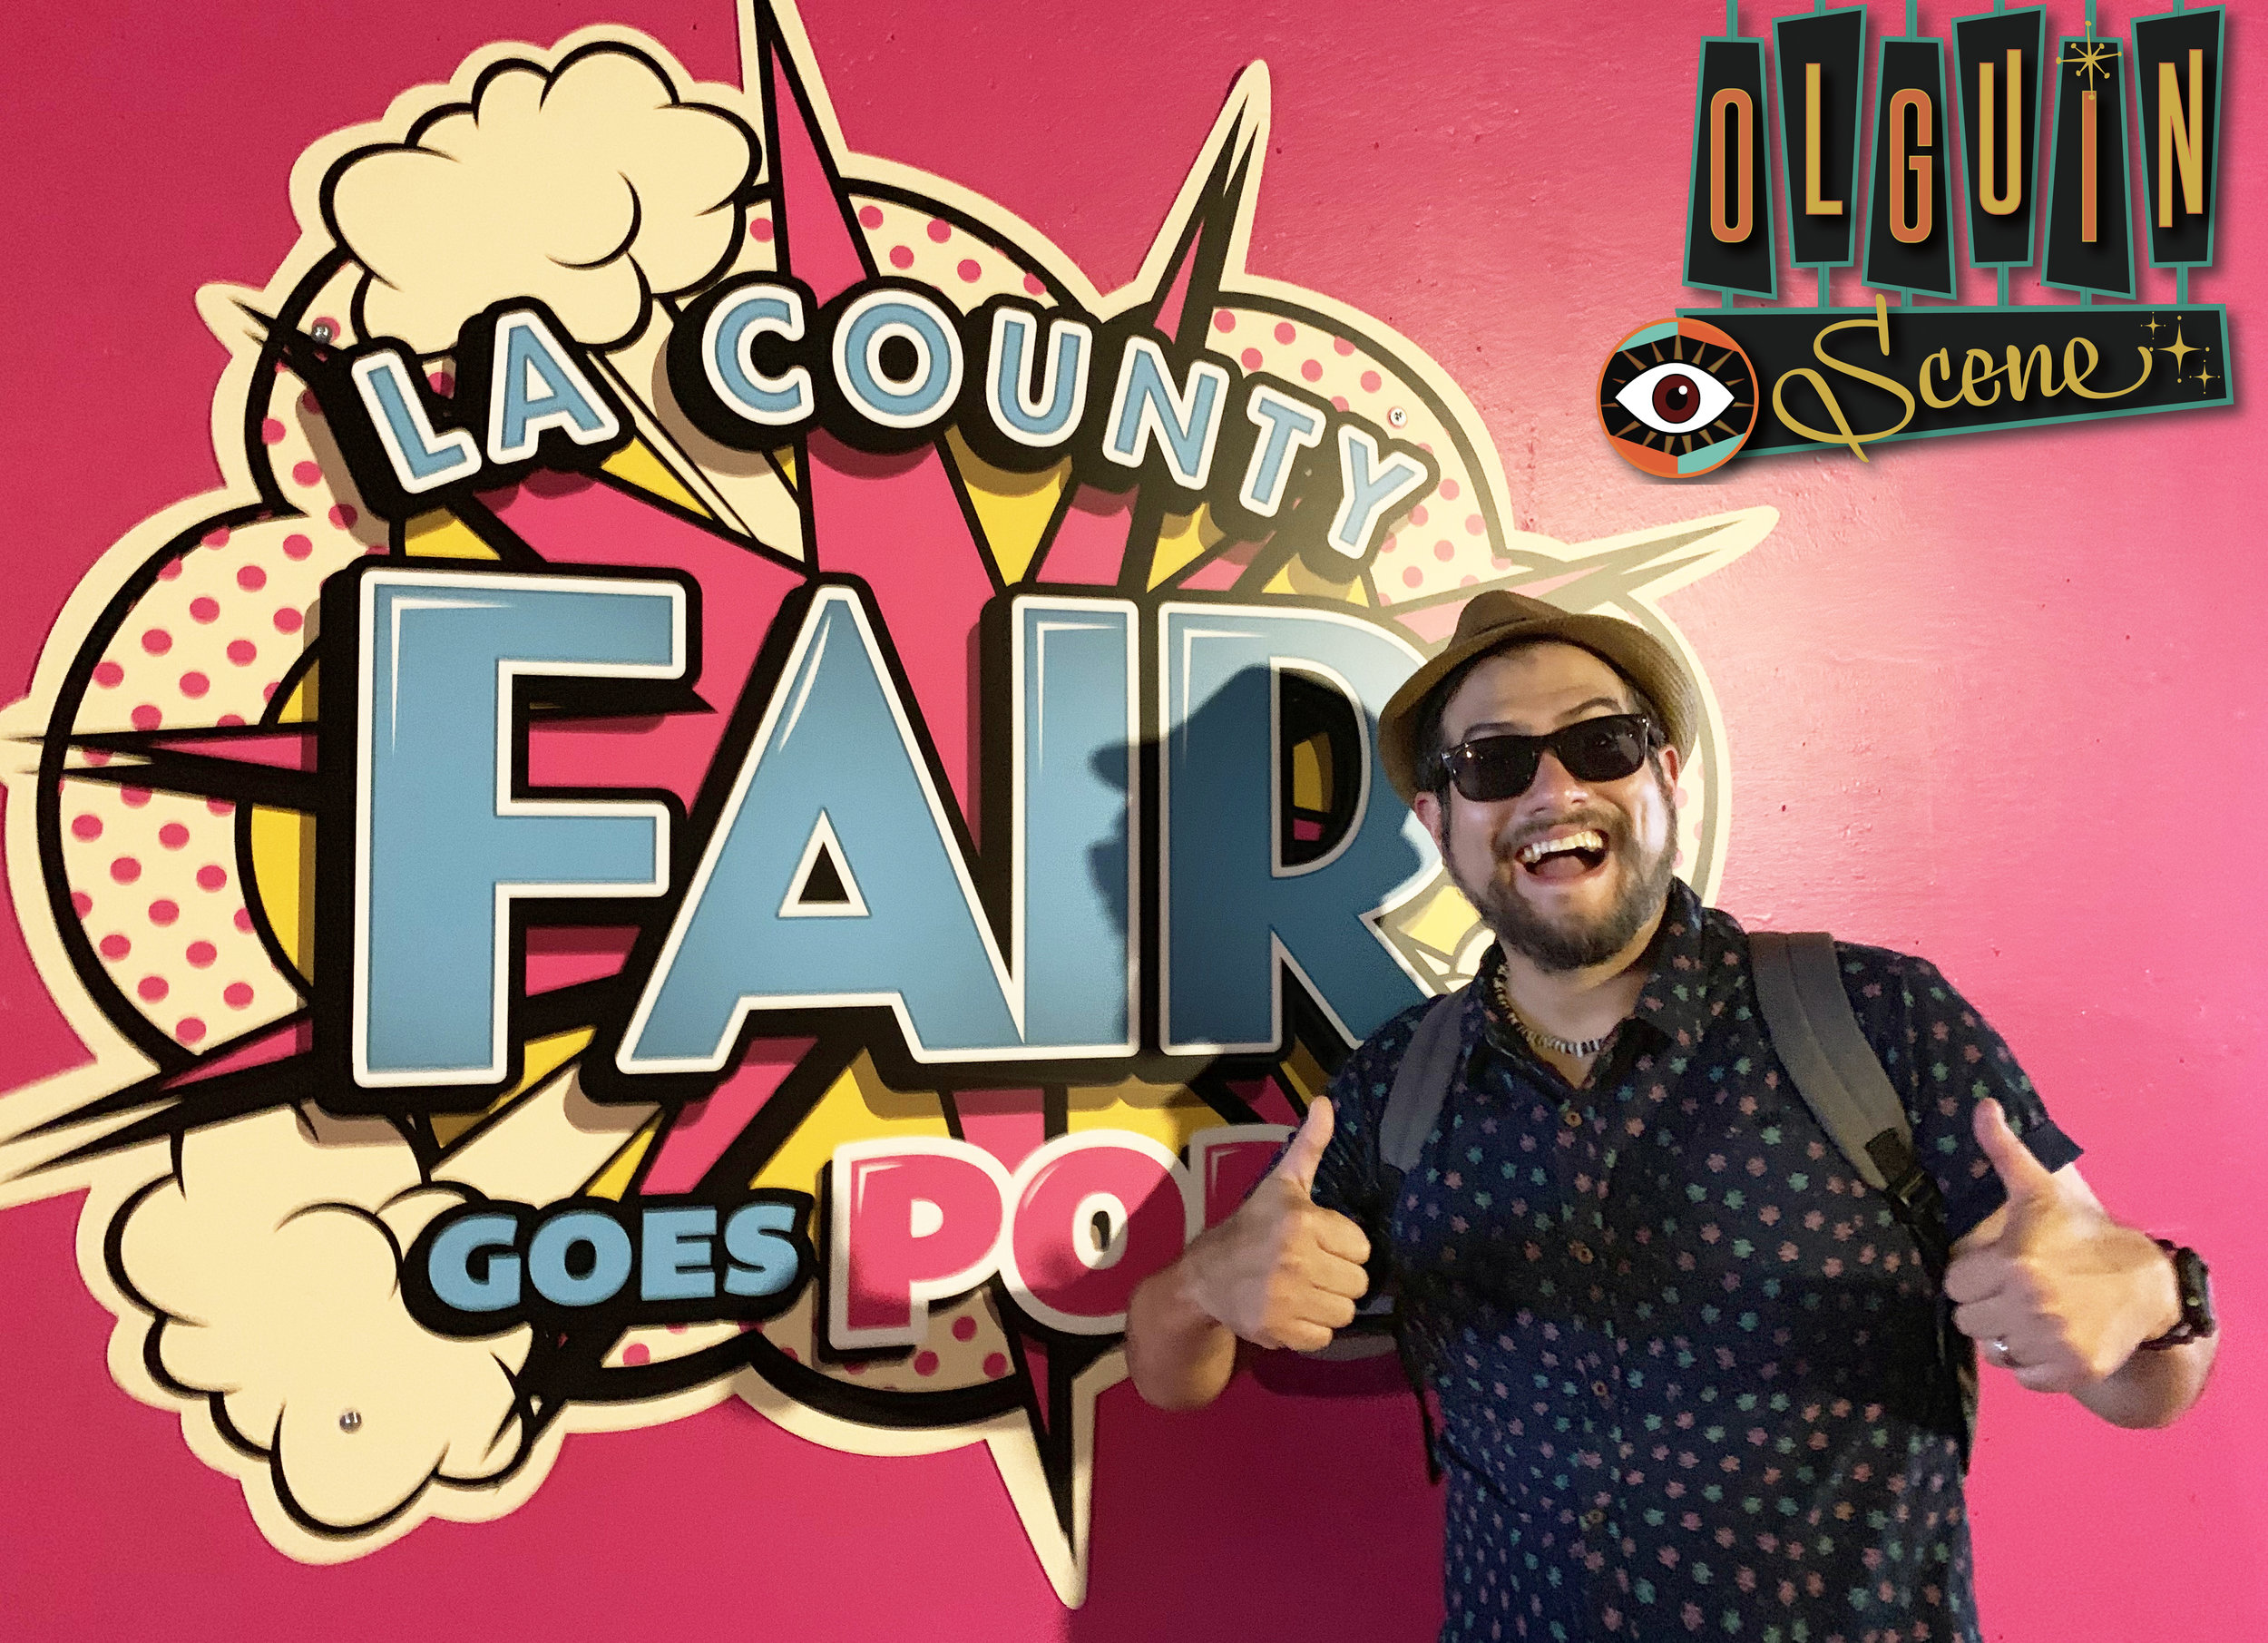 www.lacountyfair.com